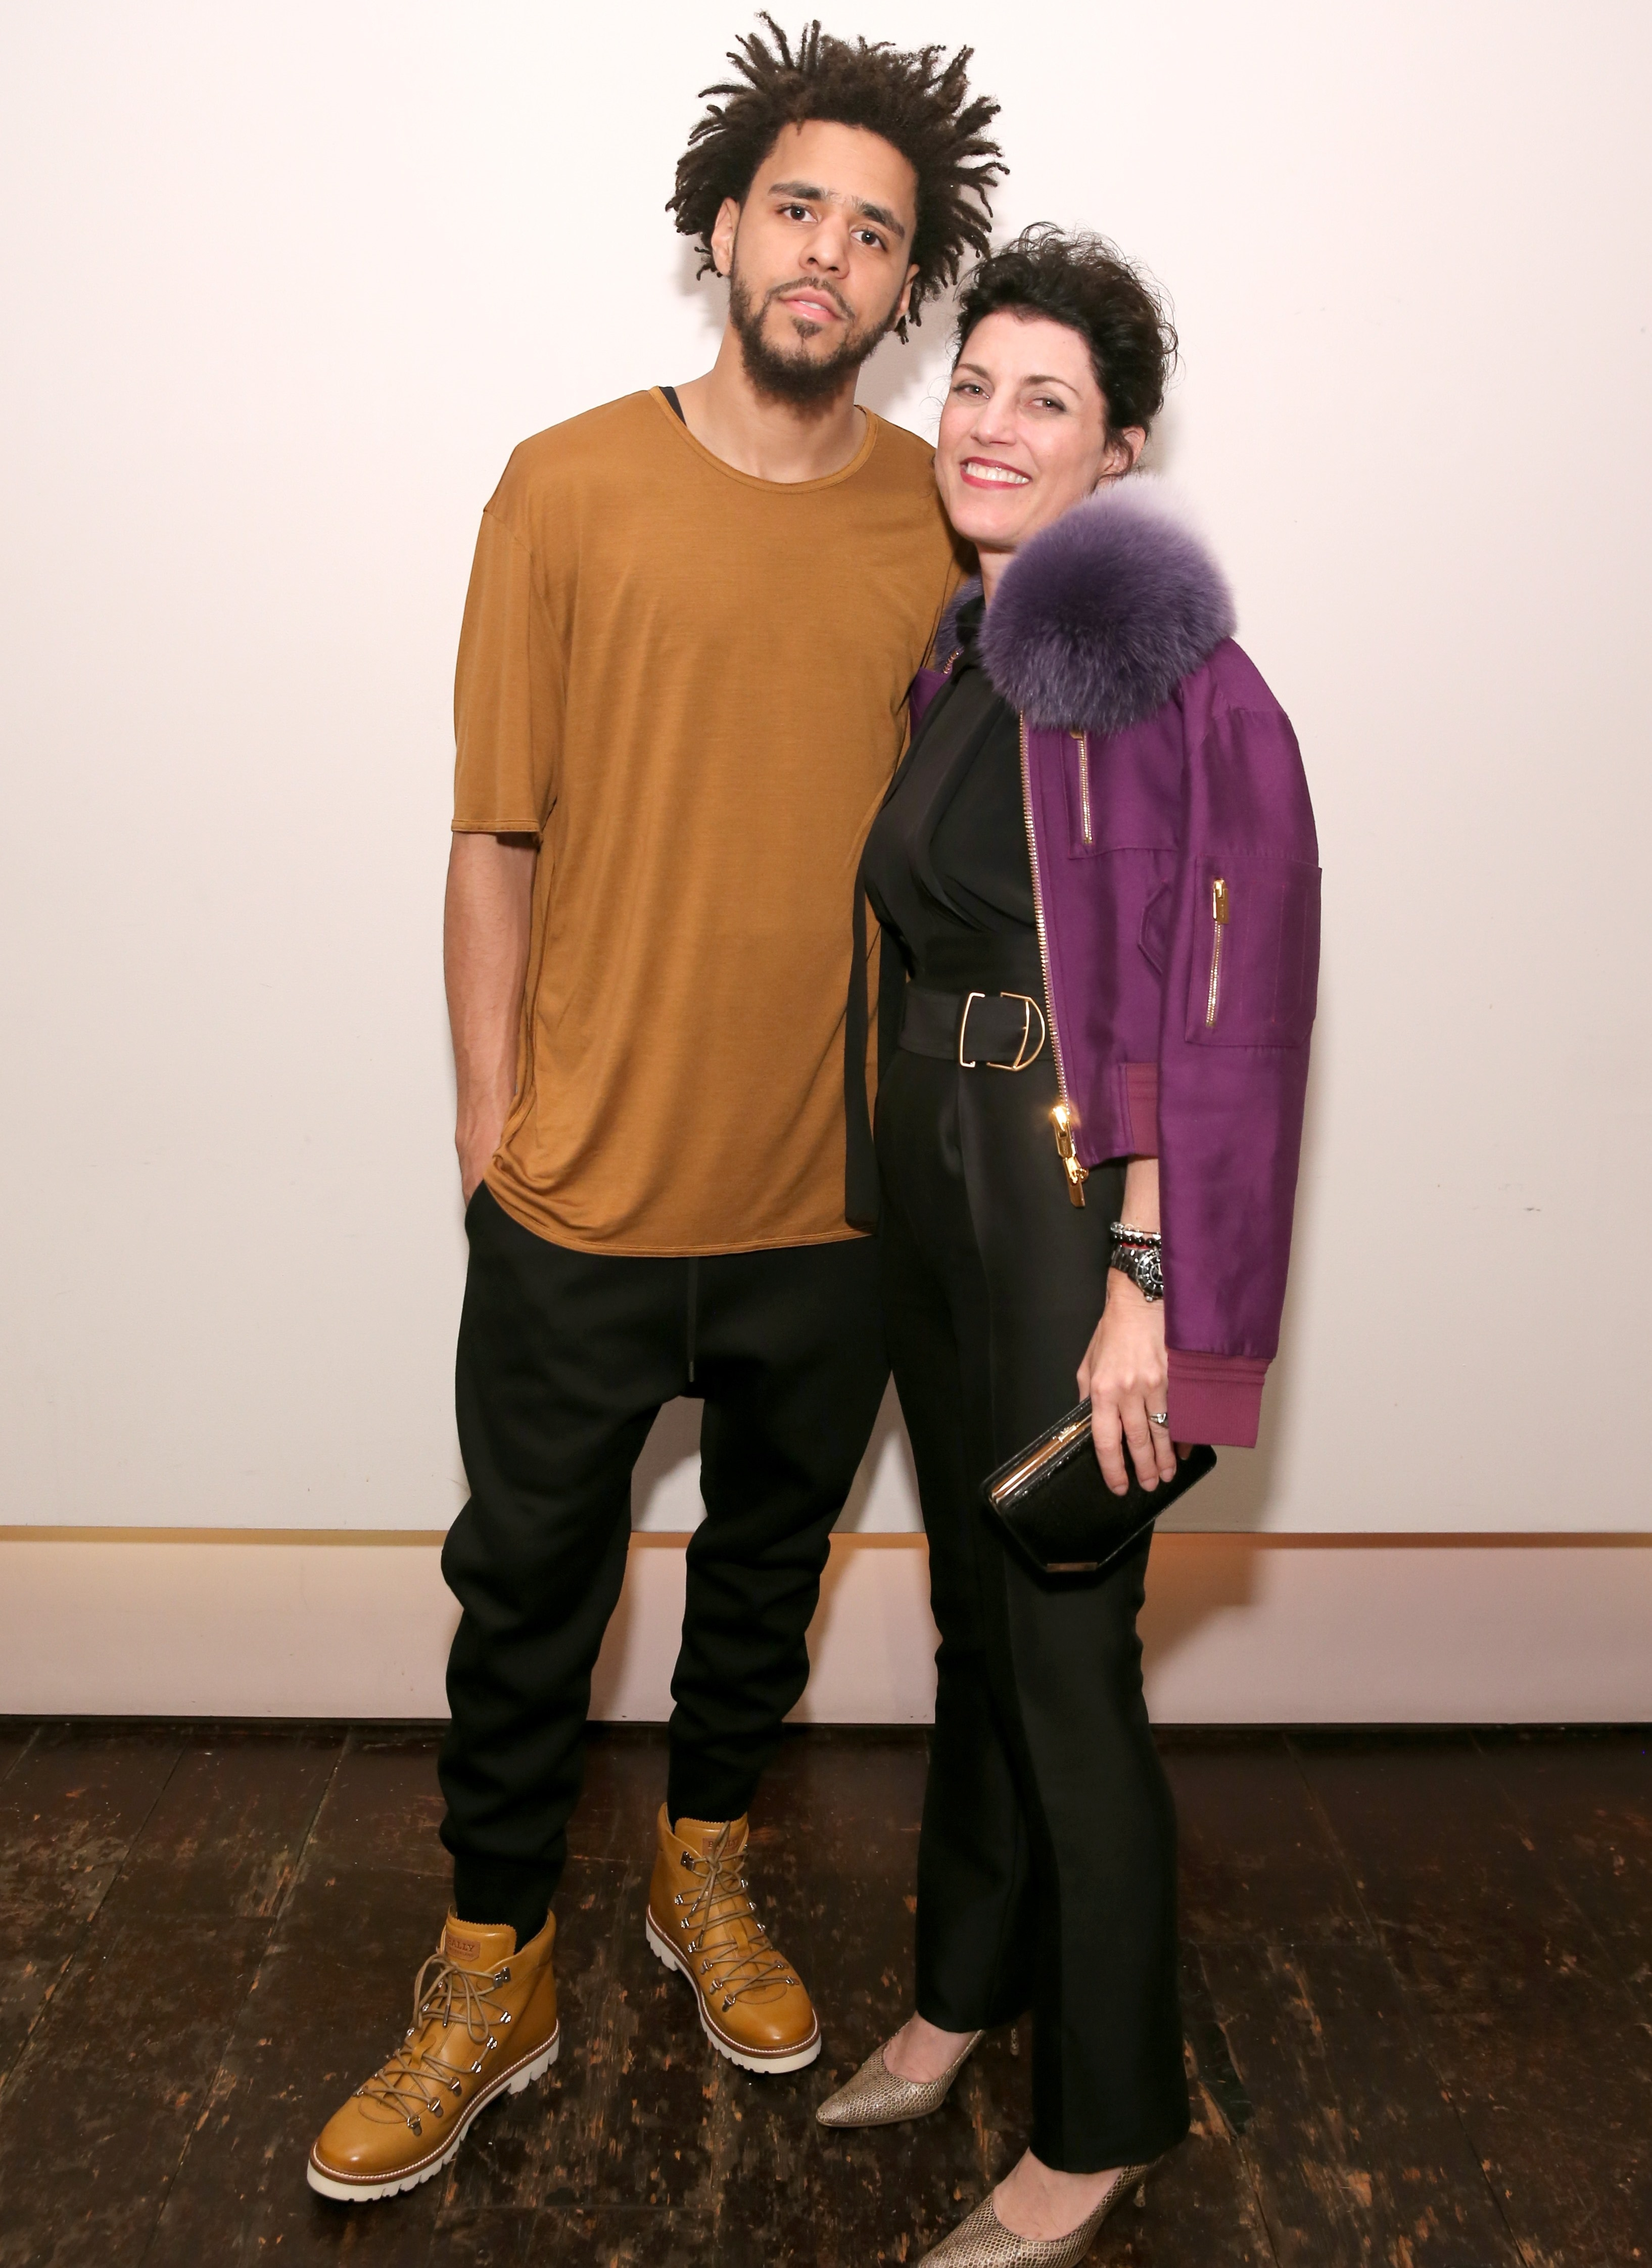 J. Cole and Claudia Cividino